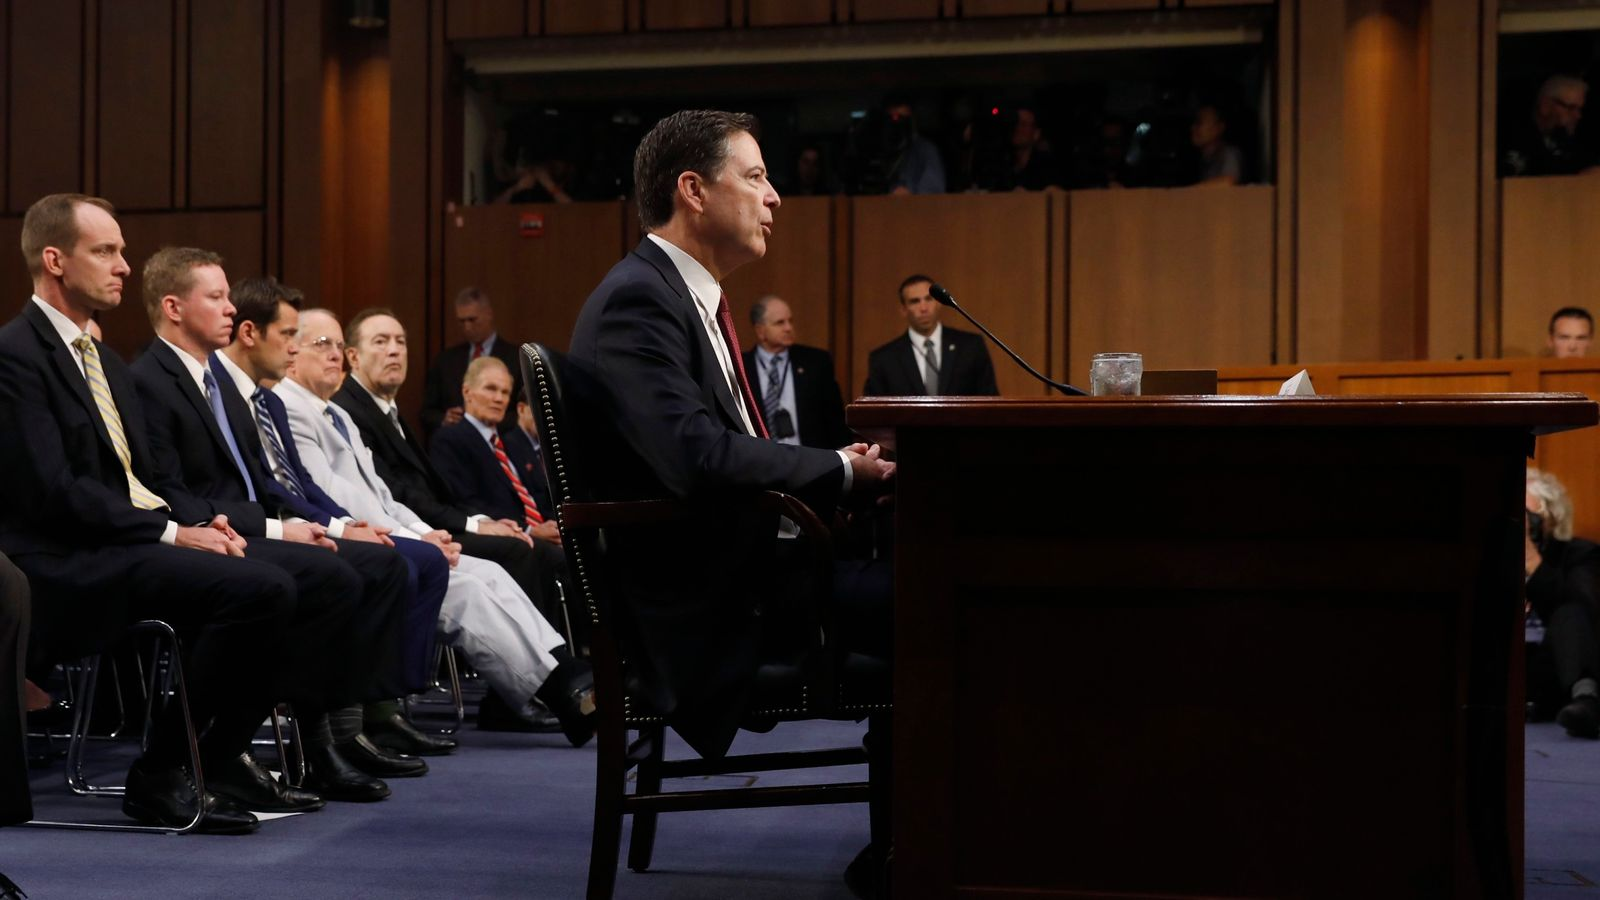 Former FBI Director James Comey testifies before a Senate Intelligence Committee